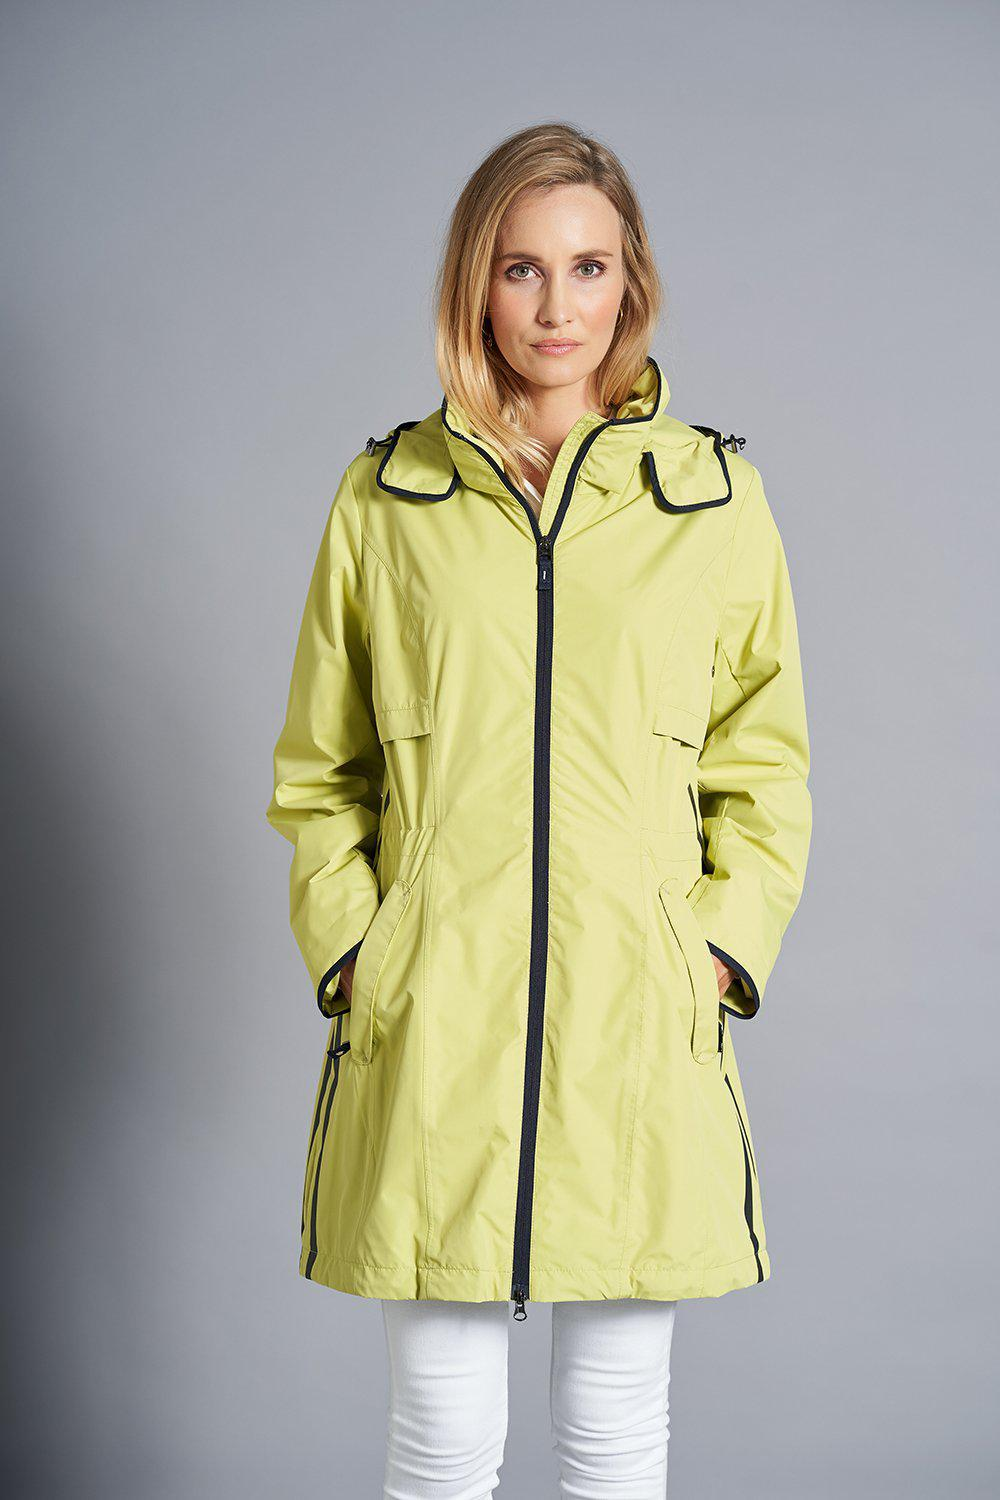 Junge BEATRICE 2895 LIME-FUNCTIONAL-JUNGE-44-Janan Boutique